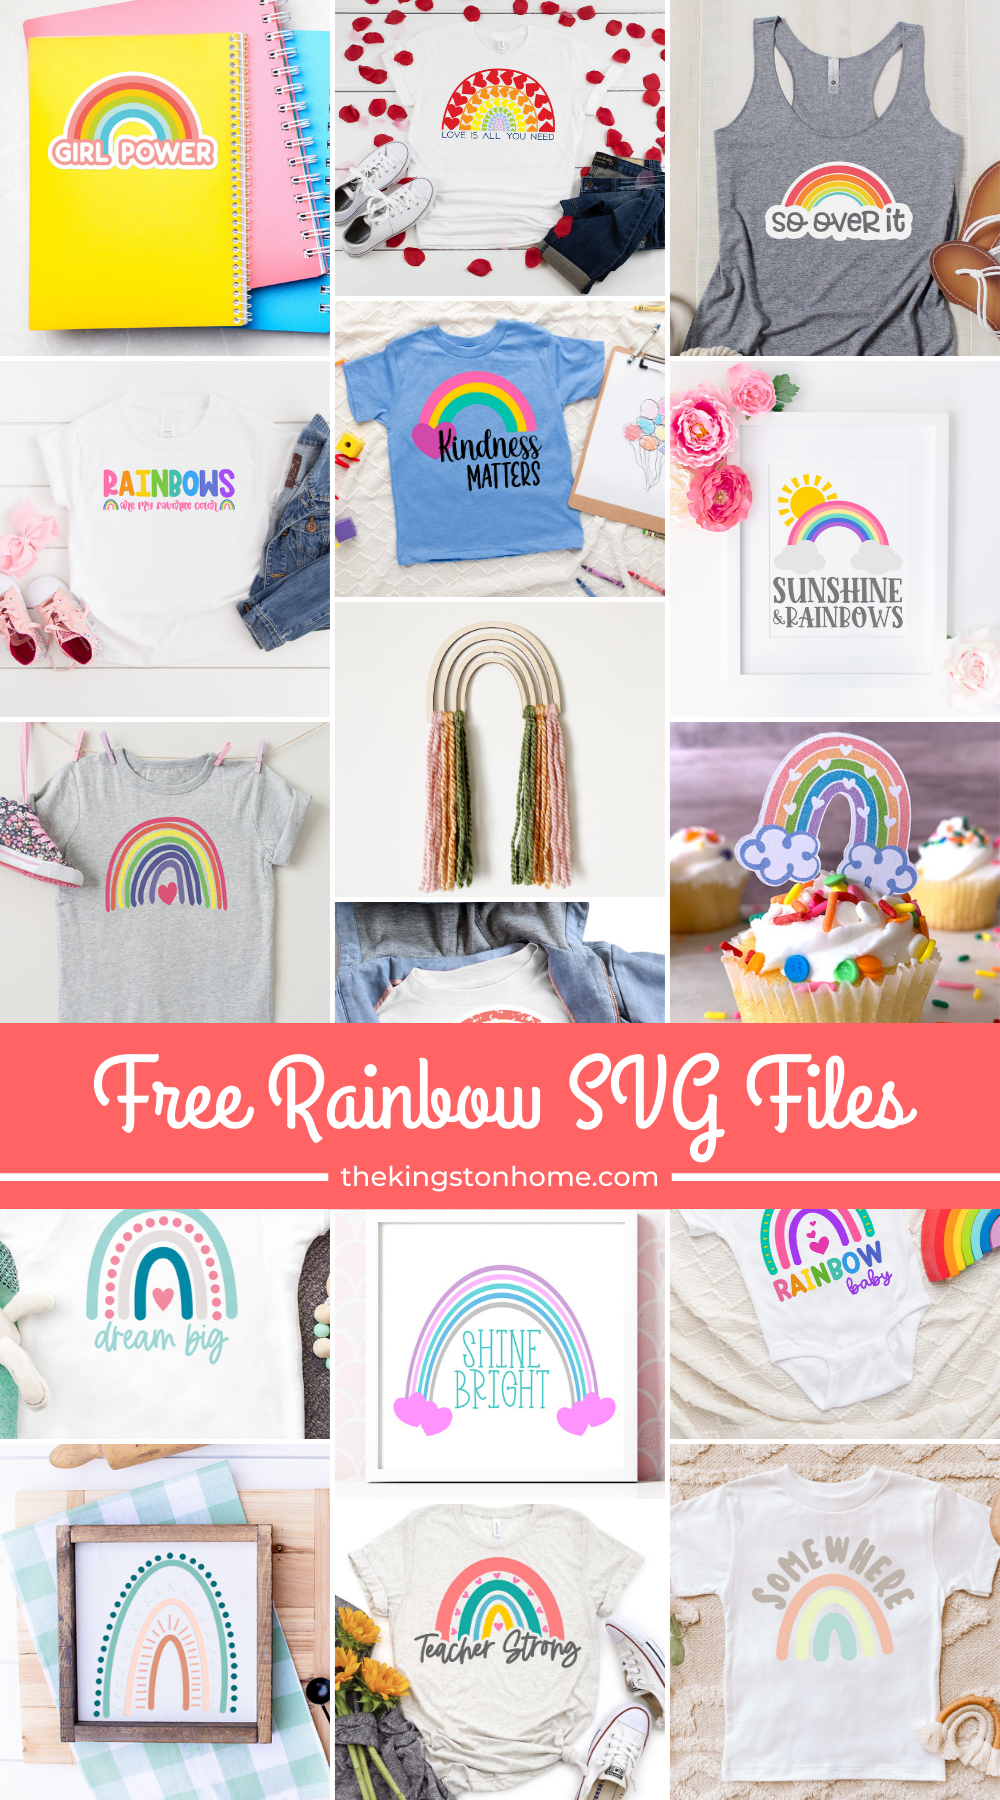 Free Rainbow SVG Files - The Kingston Home: If there is one thing we can all use these days - it's rainbows! We're sharing sixteen free Rainbow SVG files to brighten up your corner of the world. via @craftykingstons